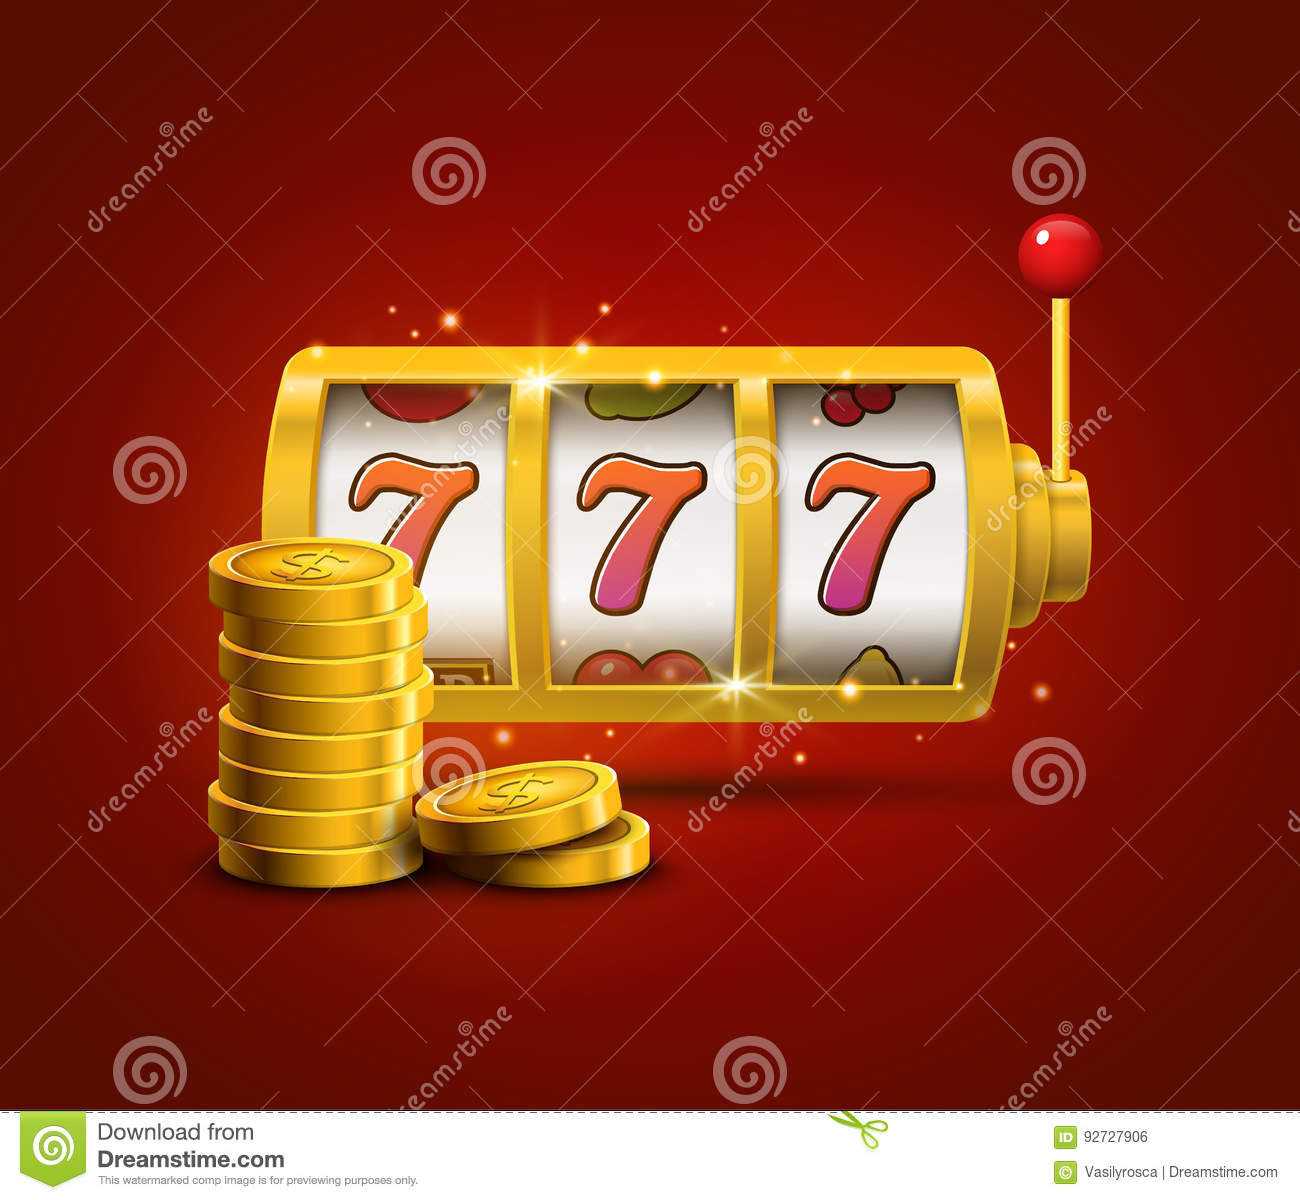 Slot machine lucky sevens jackpot concept 777. Vector casino game. Slot machine with money coins. Fortune chance jackpot